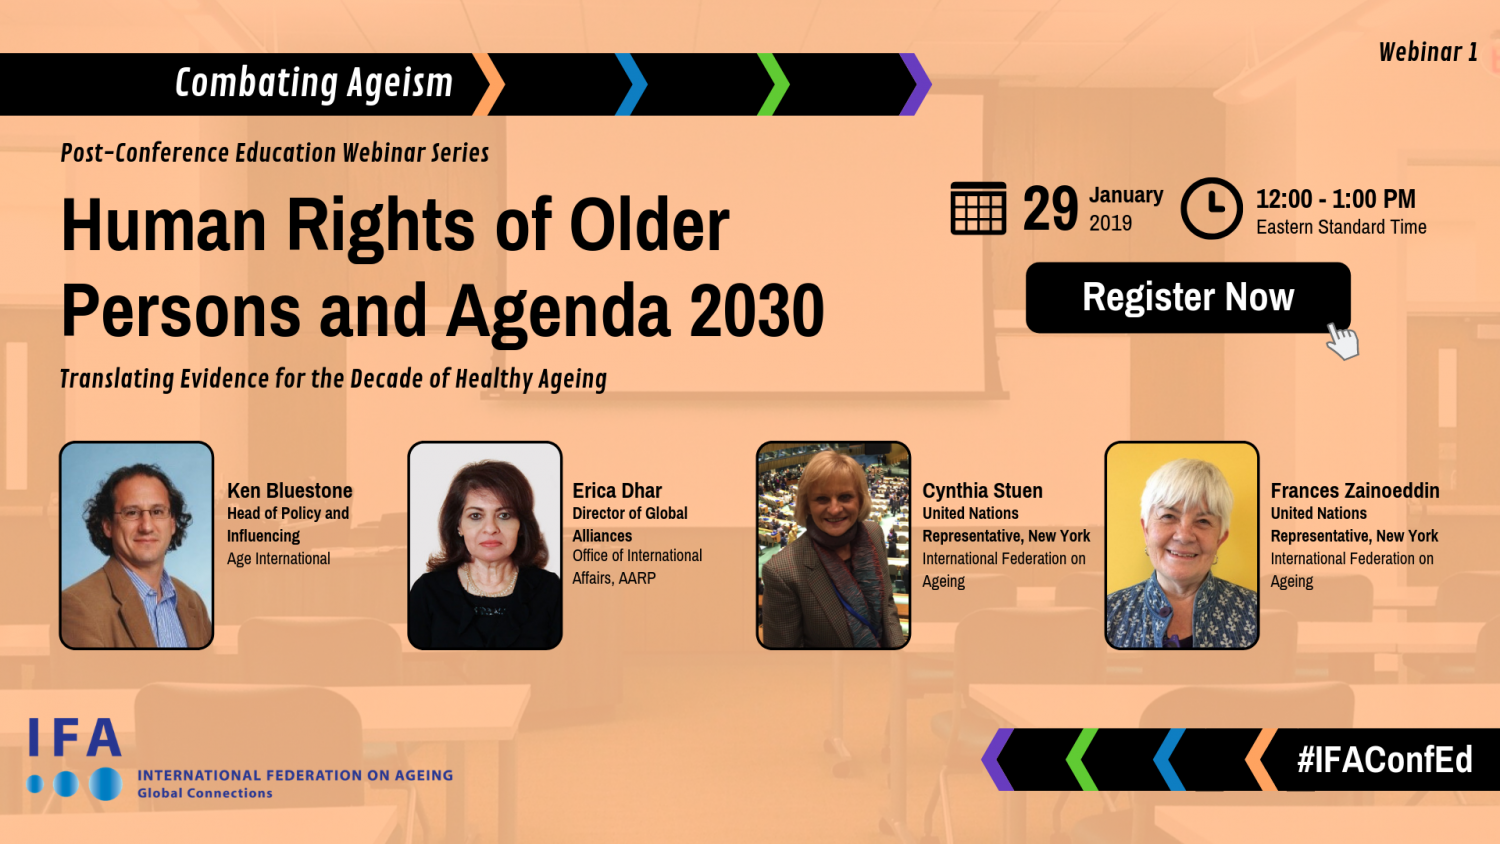 Webinar Announcement: Human Rights of Older Persons and Agenda 2030